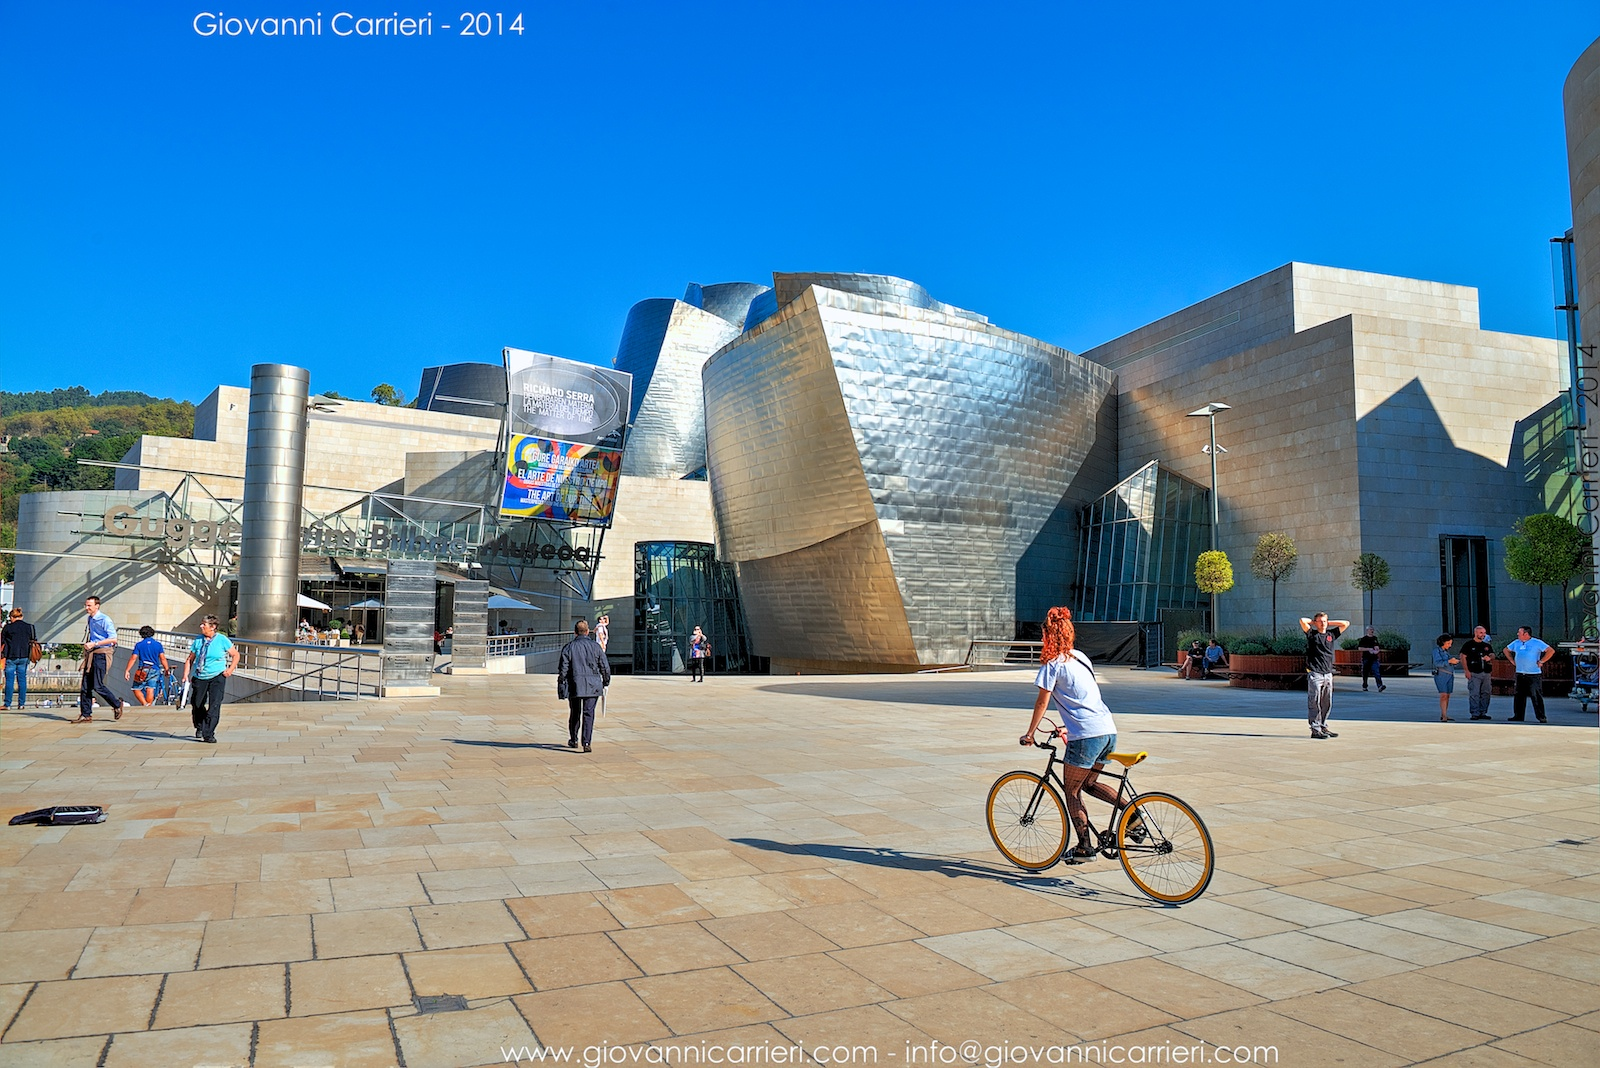 Front view of the Guggenheim Museum - Bilbao